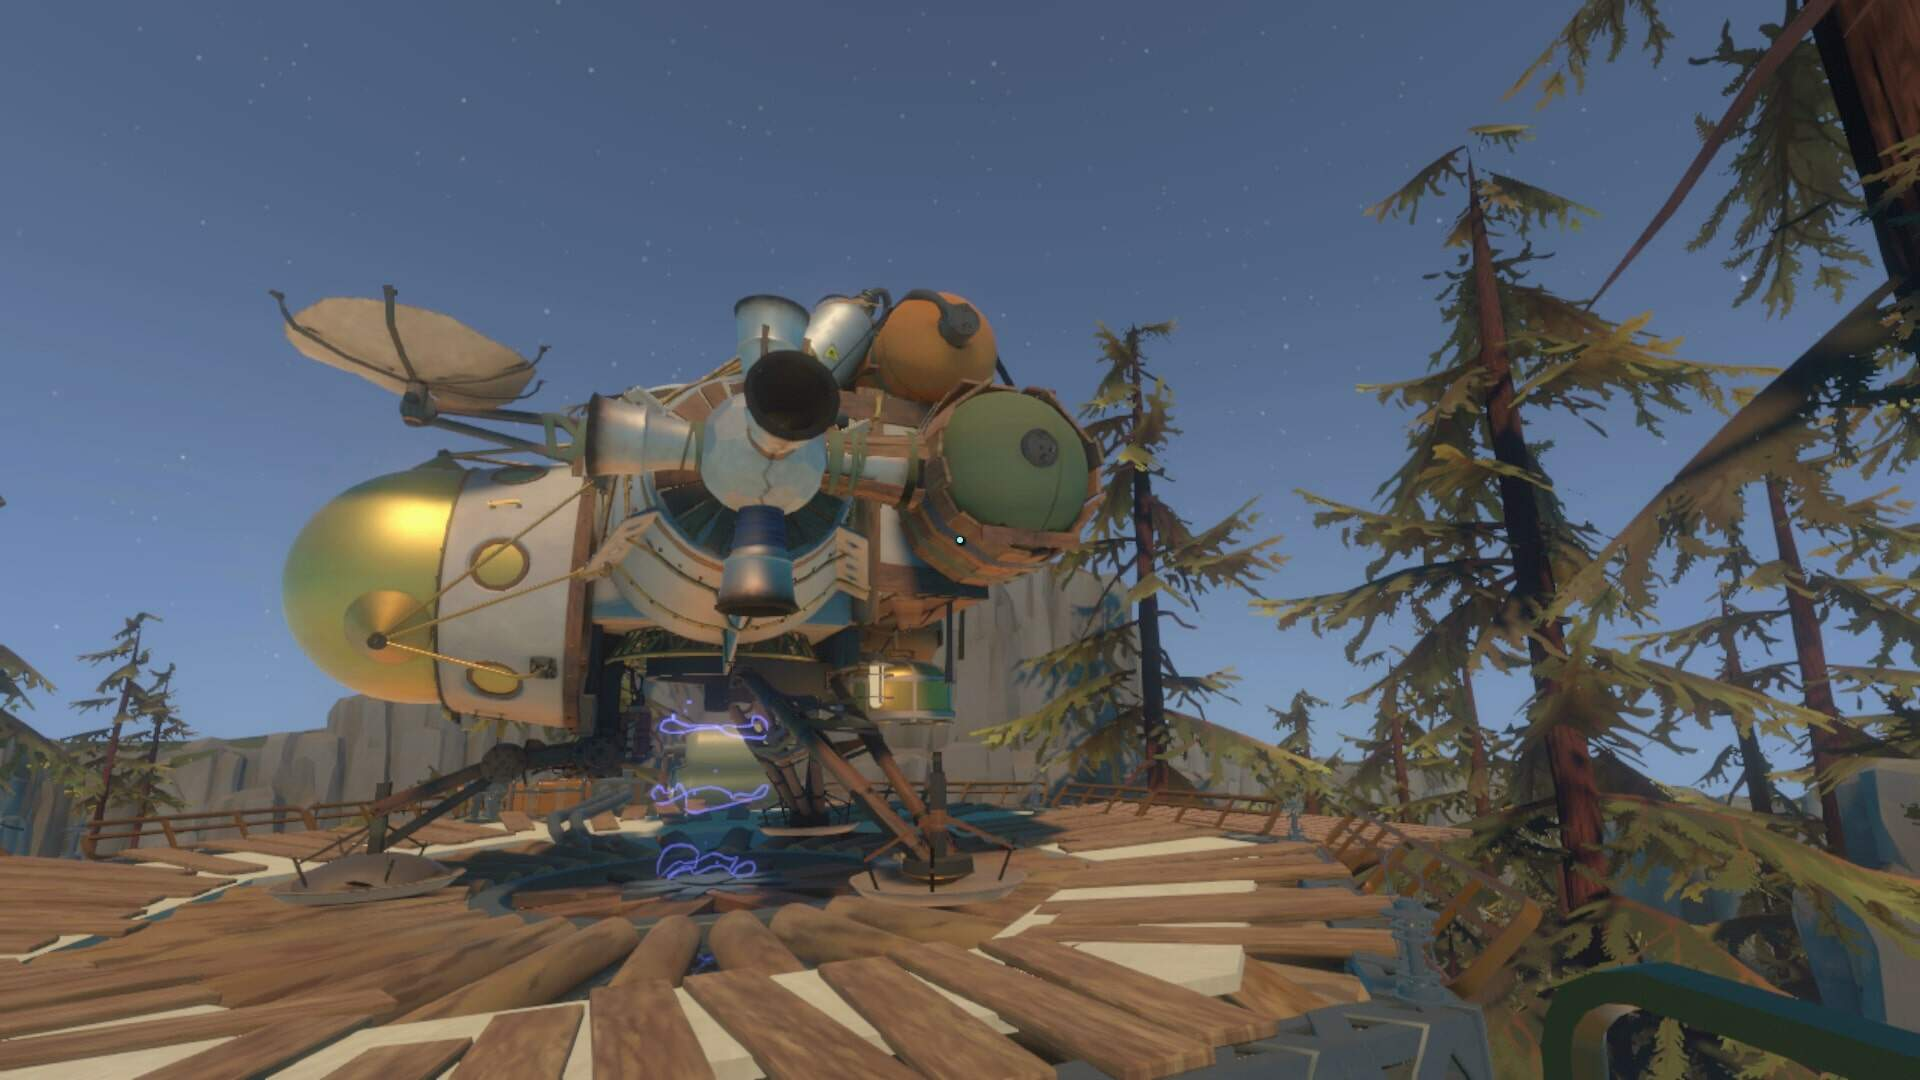 Outer Wilds Observatory Walkthrough - How to Get to the Brittle Hollow Observatory